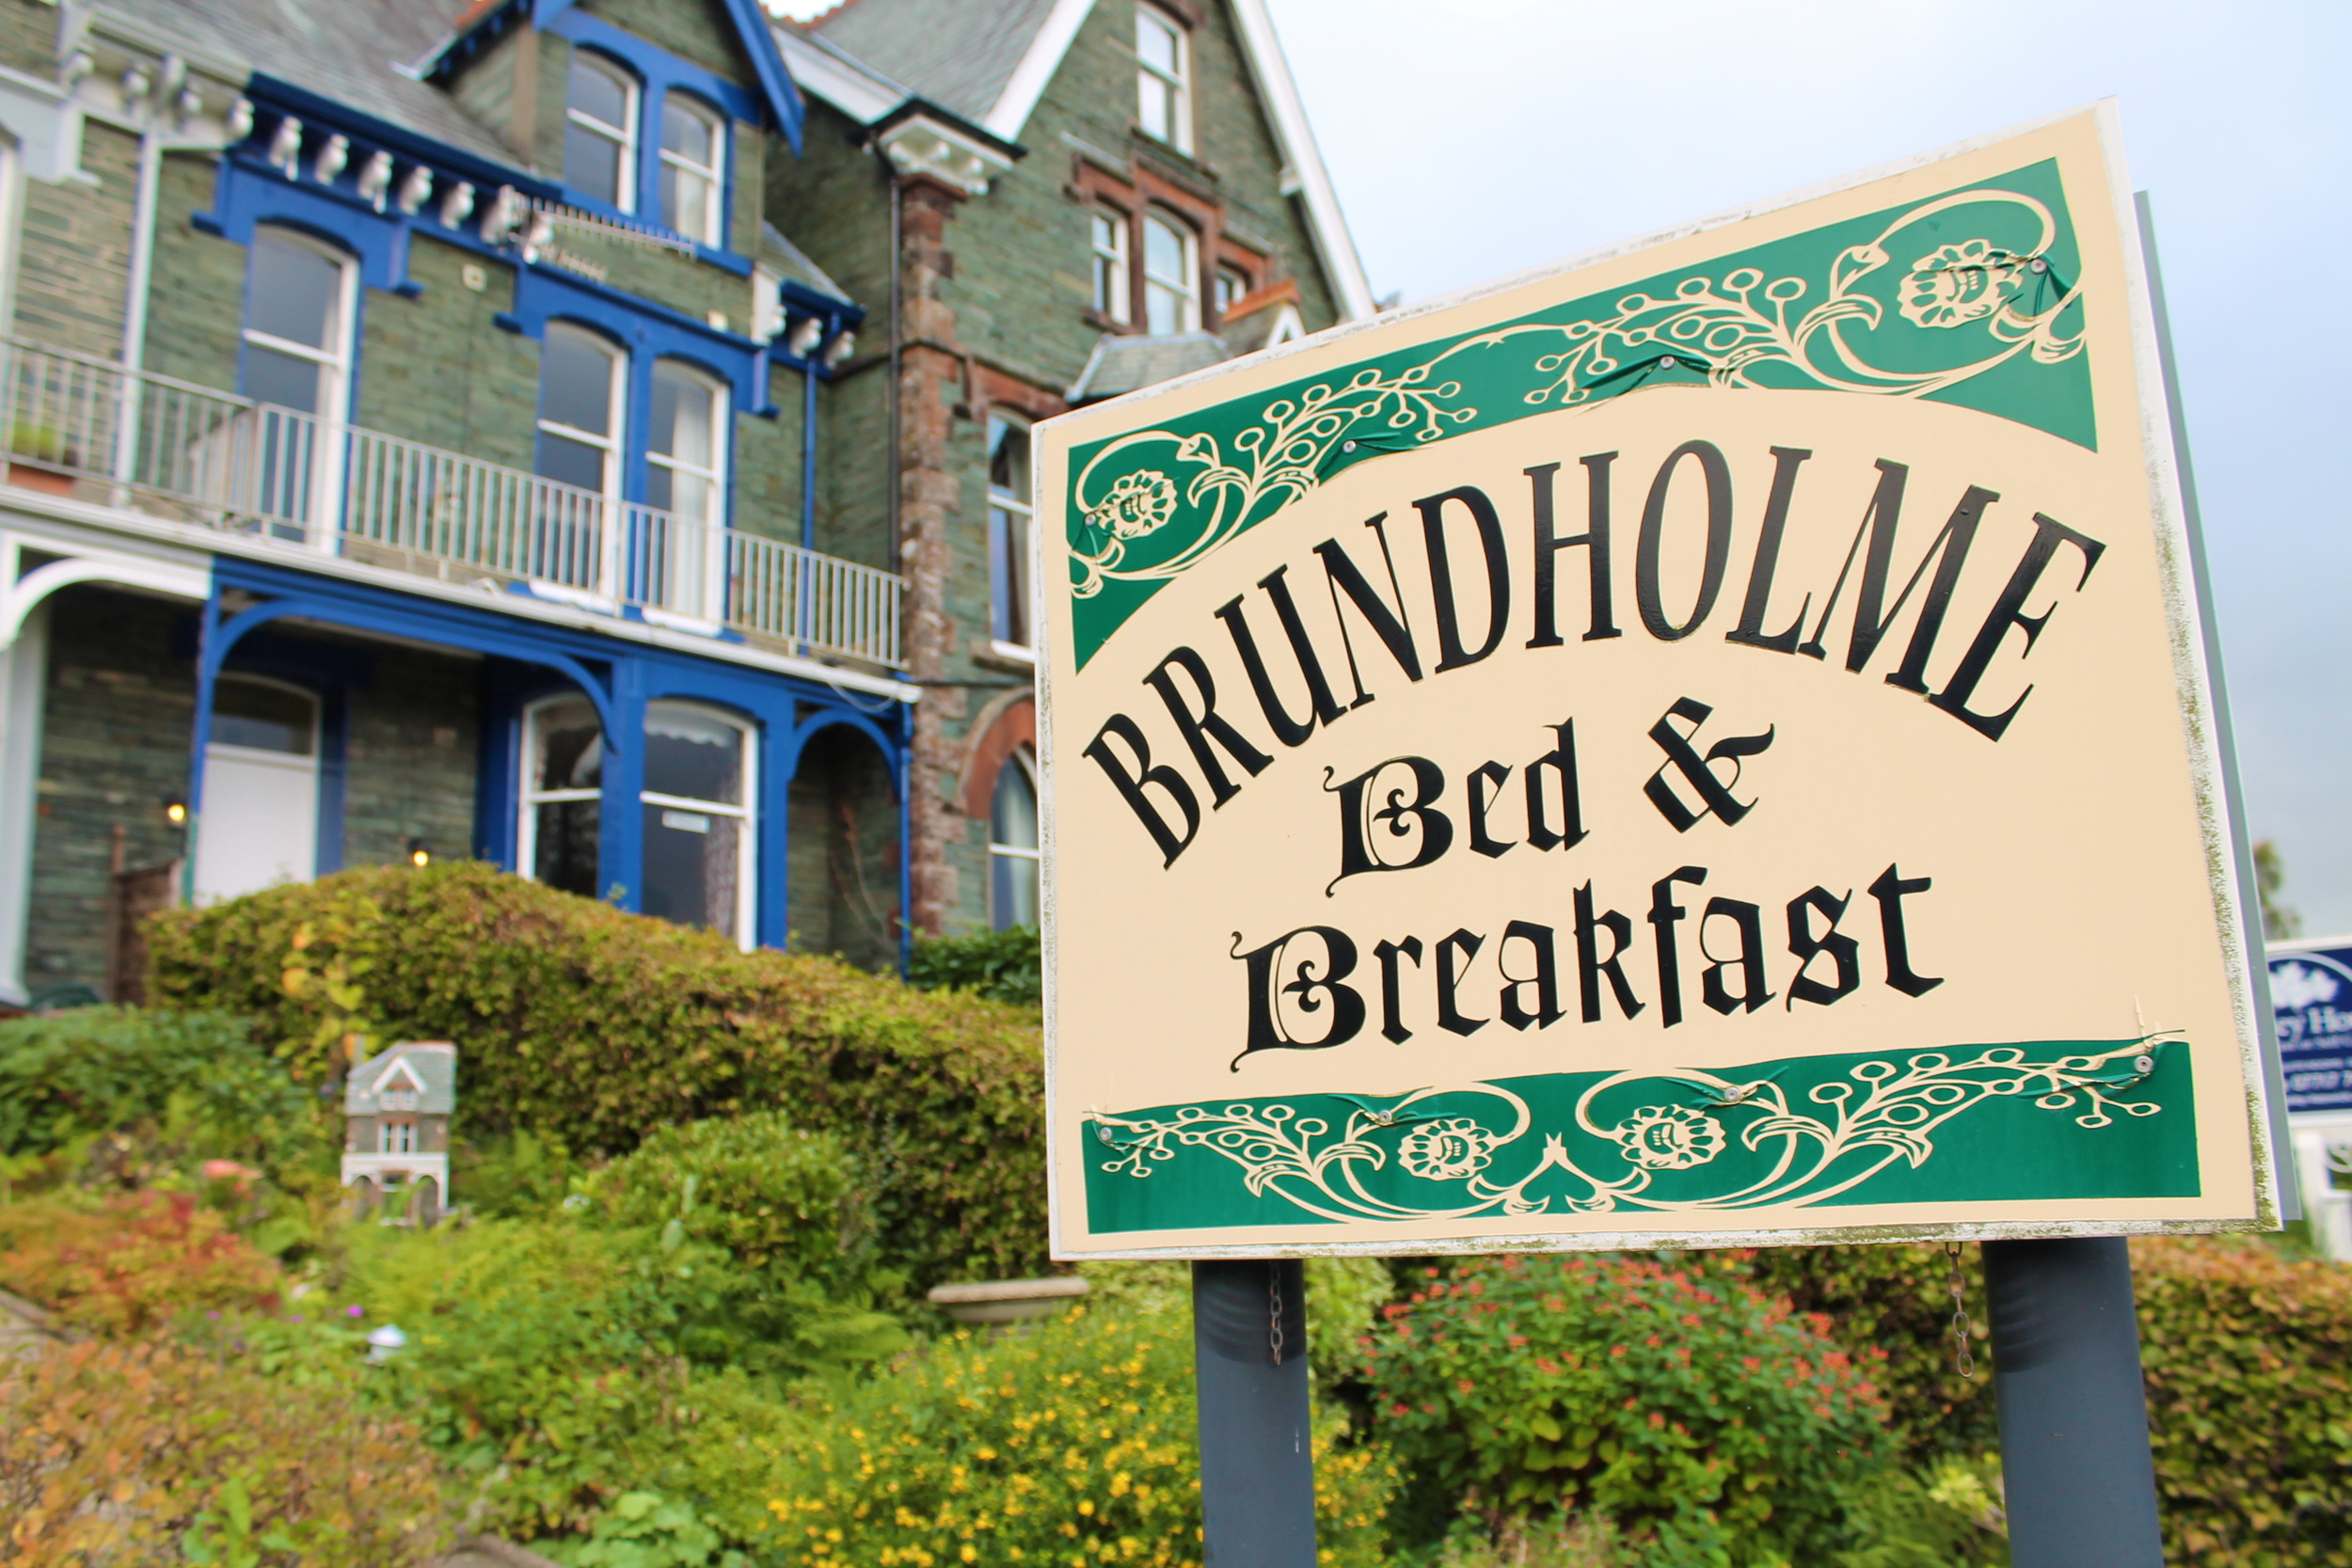 Kaci Nicole - Lake District - Brundholme Bed and Breakfast